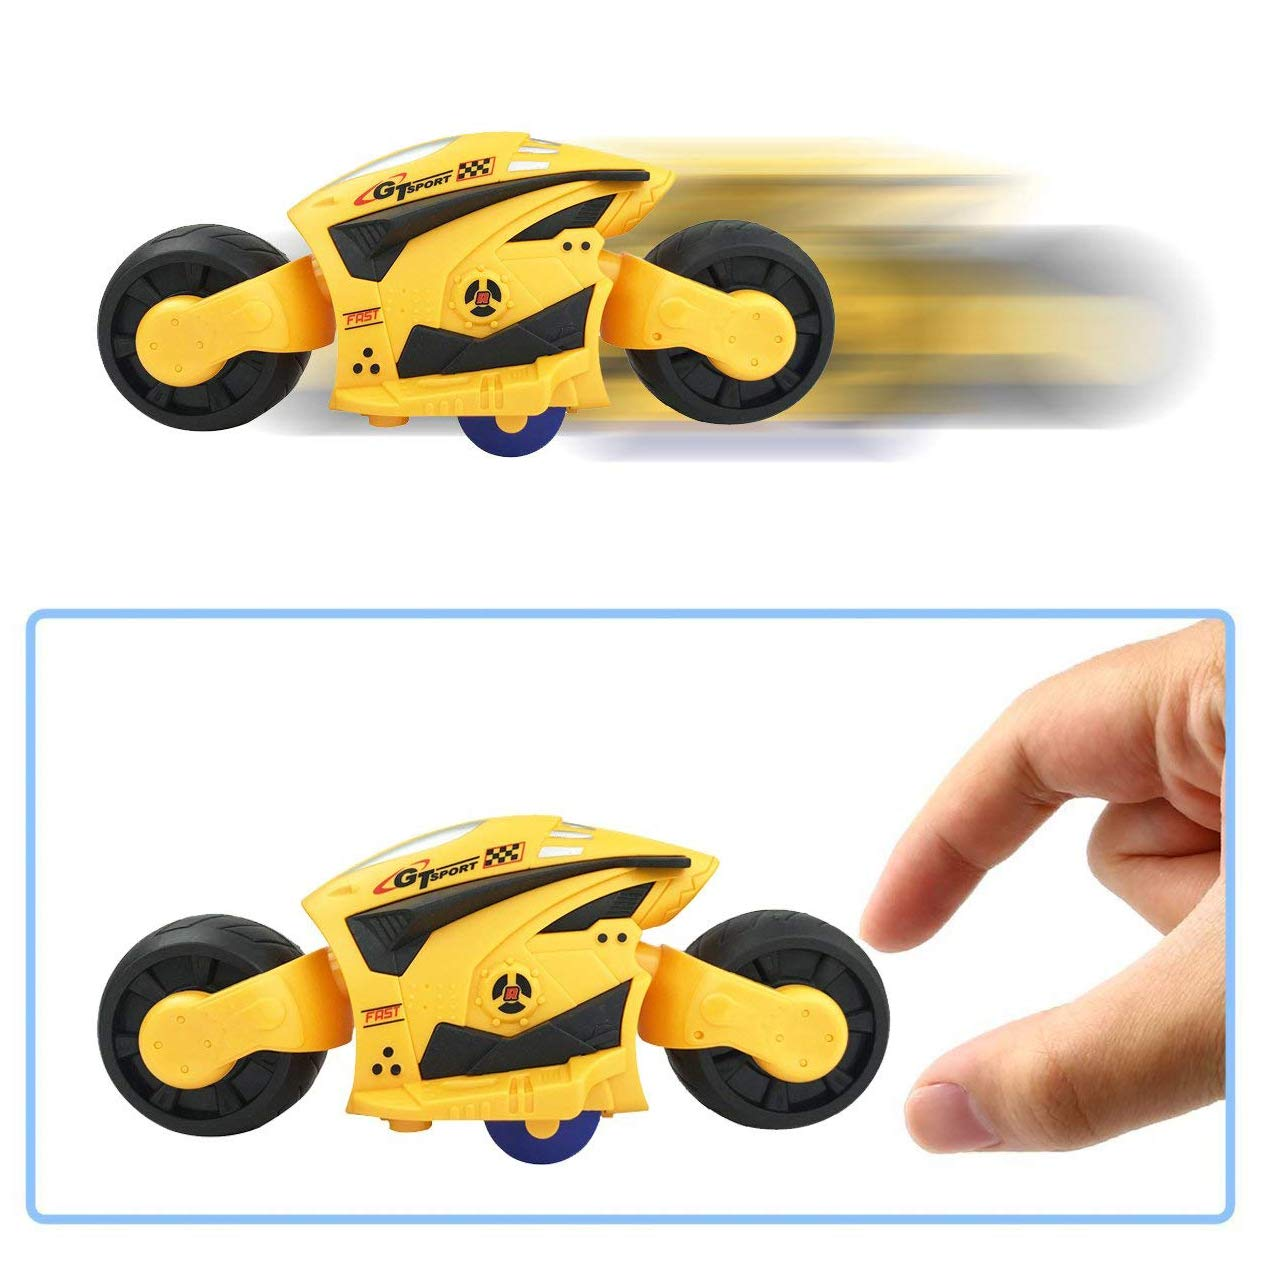 4 Pack High Speed Friction Futuristic Concept Motorcycle Toys for Kids Racing Motorbike Vehicles Party Favors